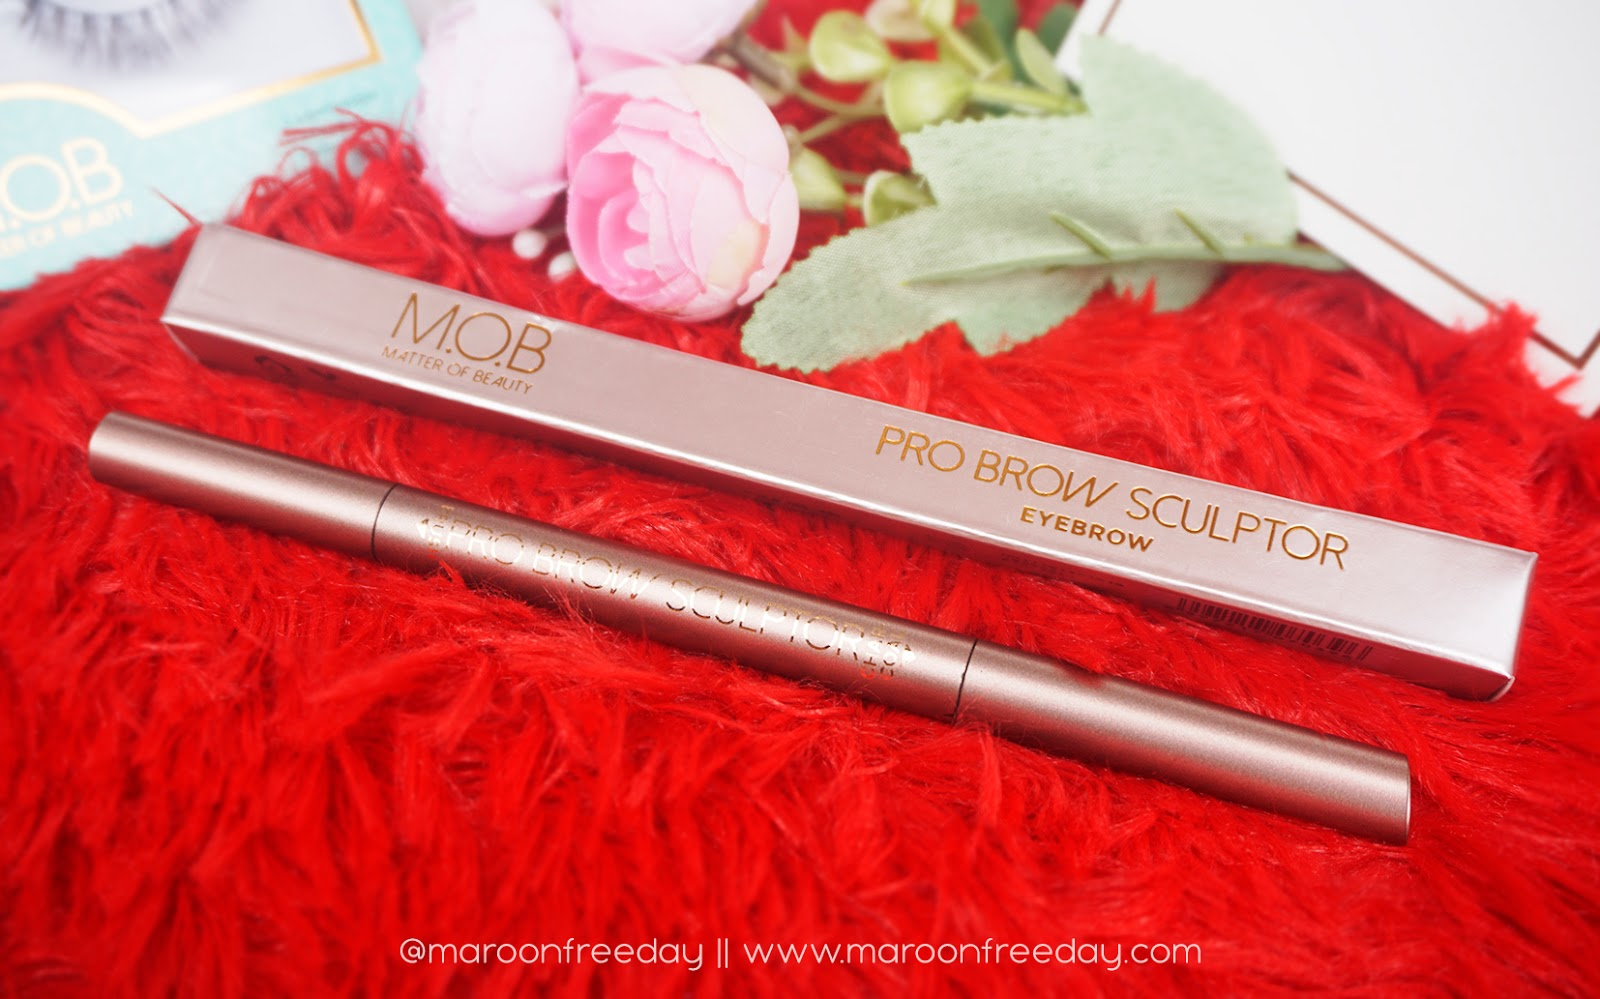 Review MOB Pro Brow Sculptor